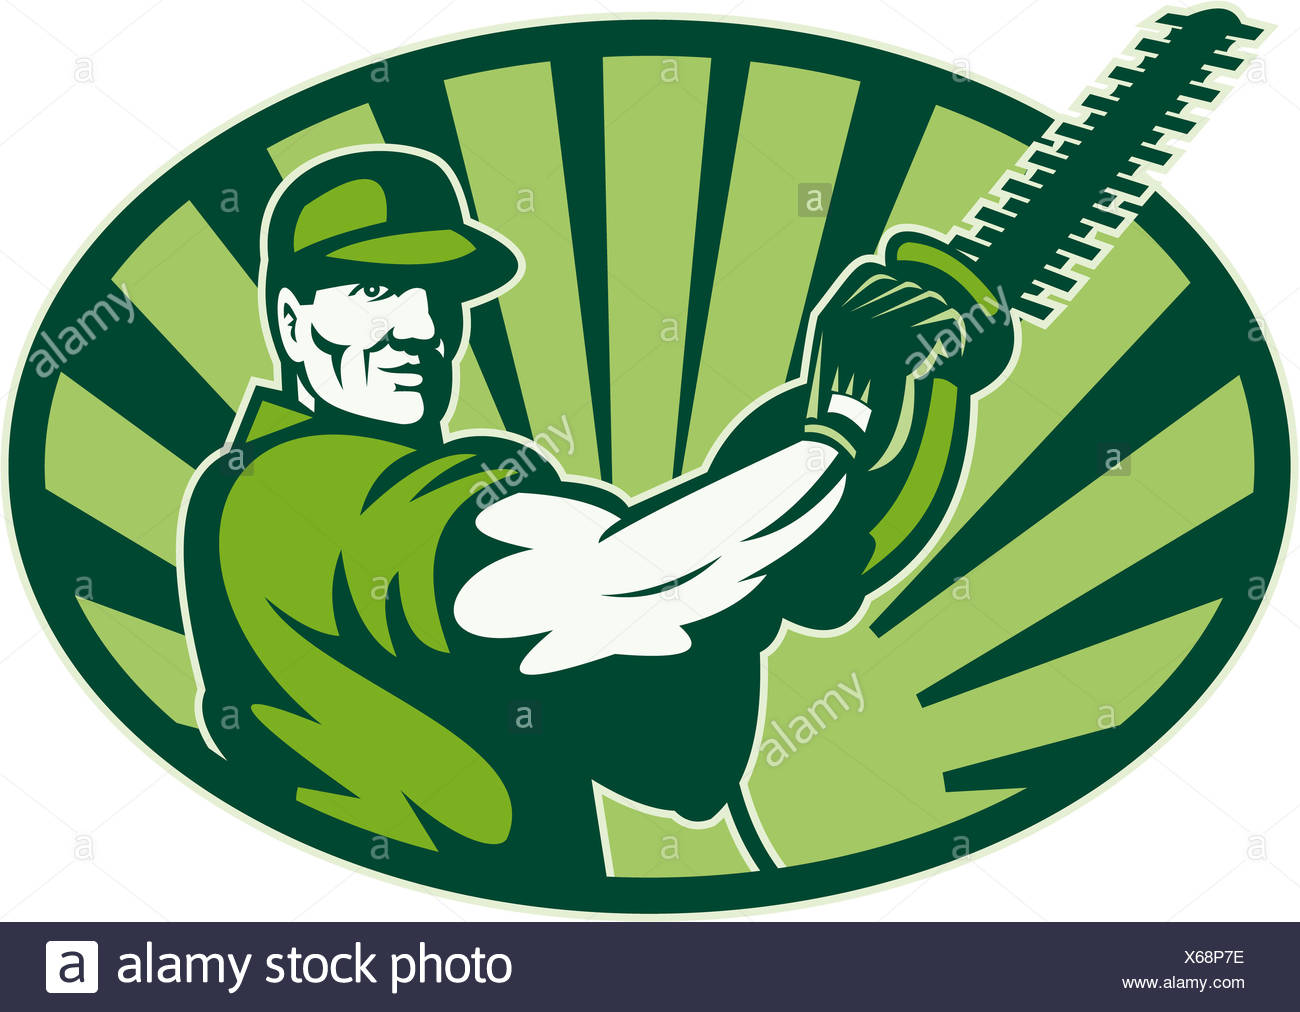 Gardener Landscaper Hedge Trimmer Retro - Stock Image